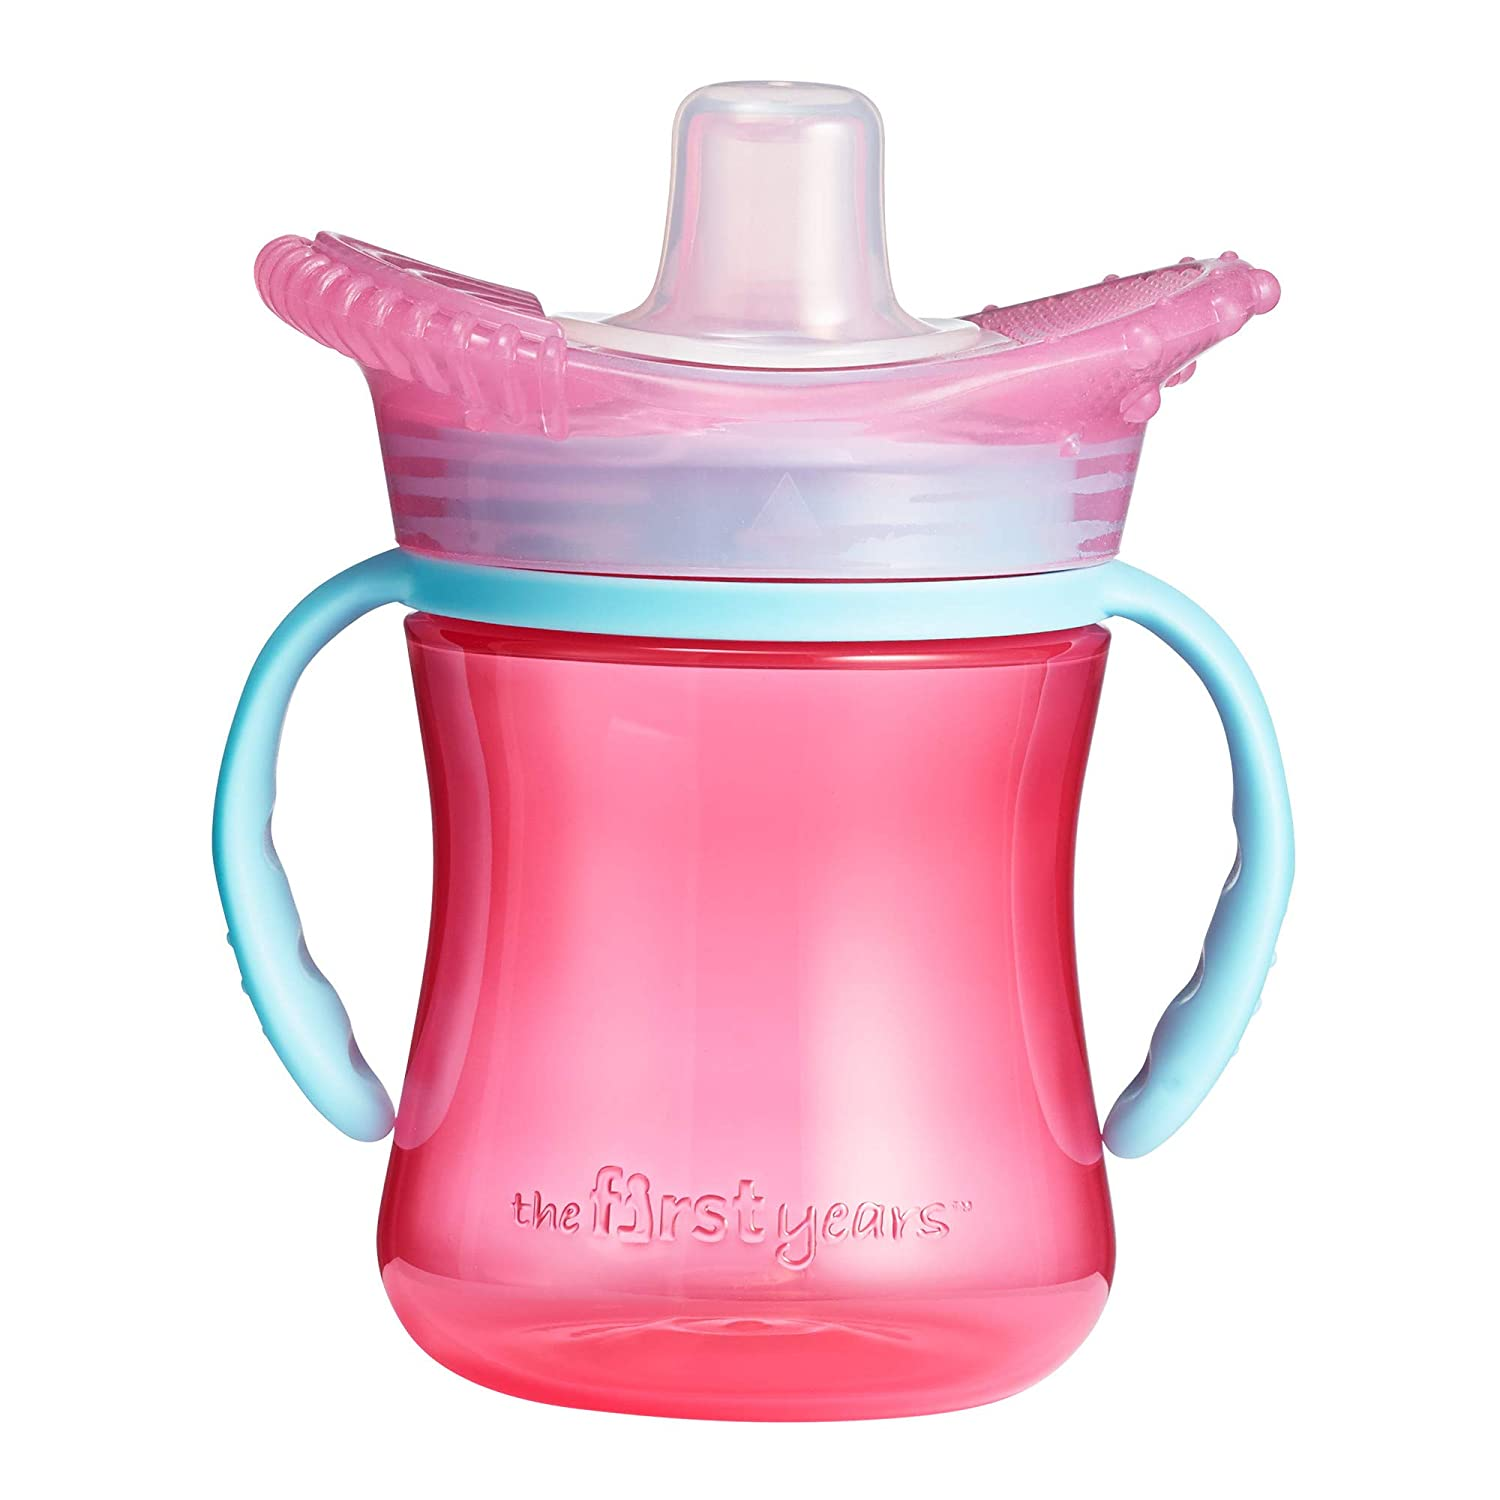 The First Years Teethe Around Sensory Trainer Sippy Cup, Pink